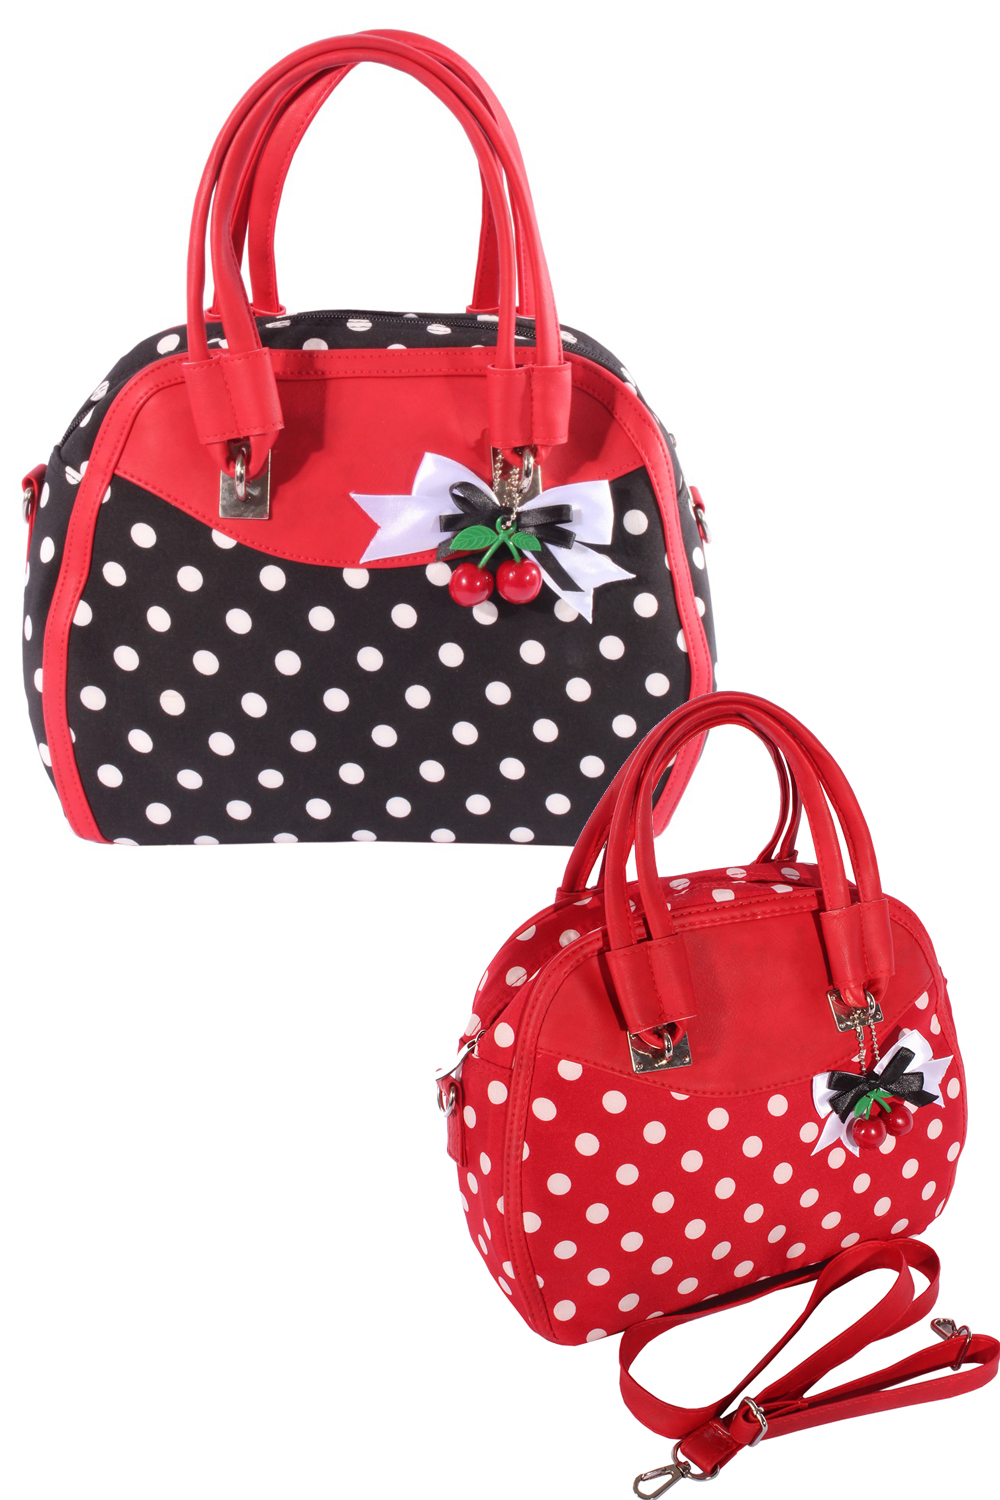 Fifties POLKA DOTS rockabilly Cherry Bow Handtasche Tasche